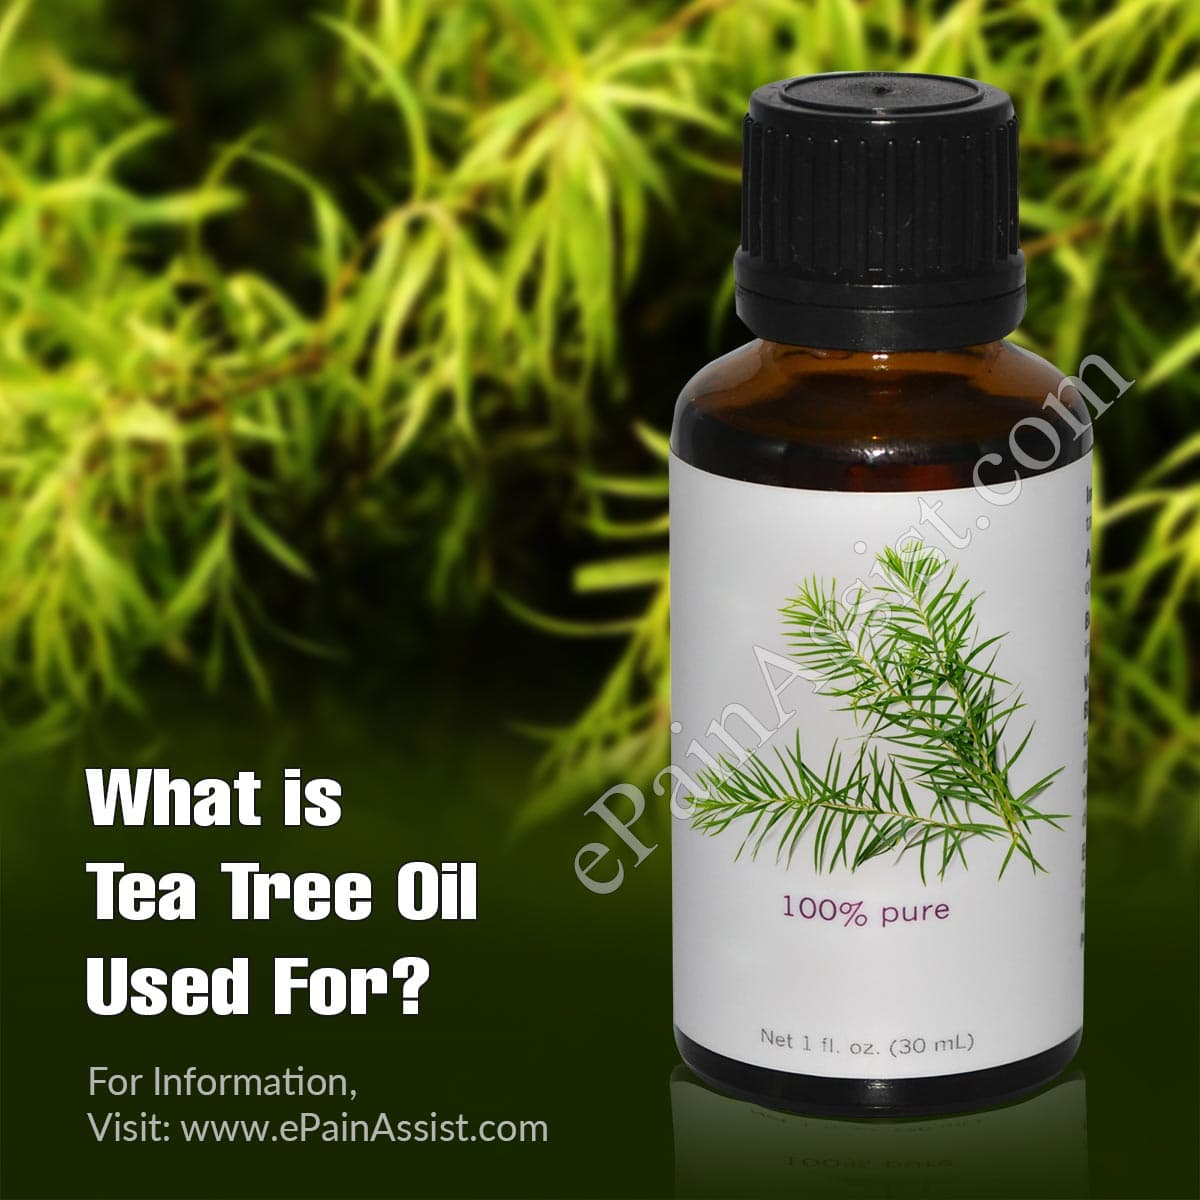 What Is Tea Tree Oil Used For?